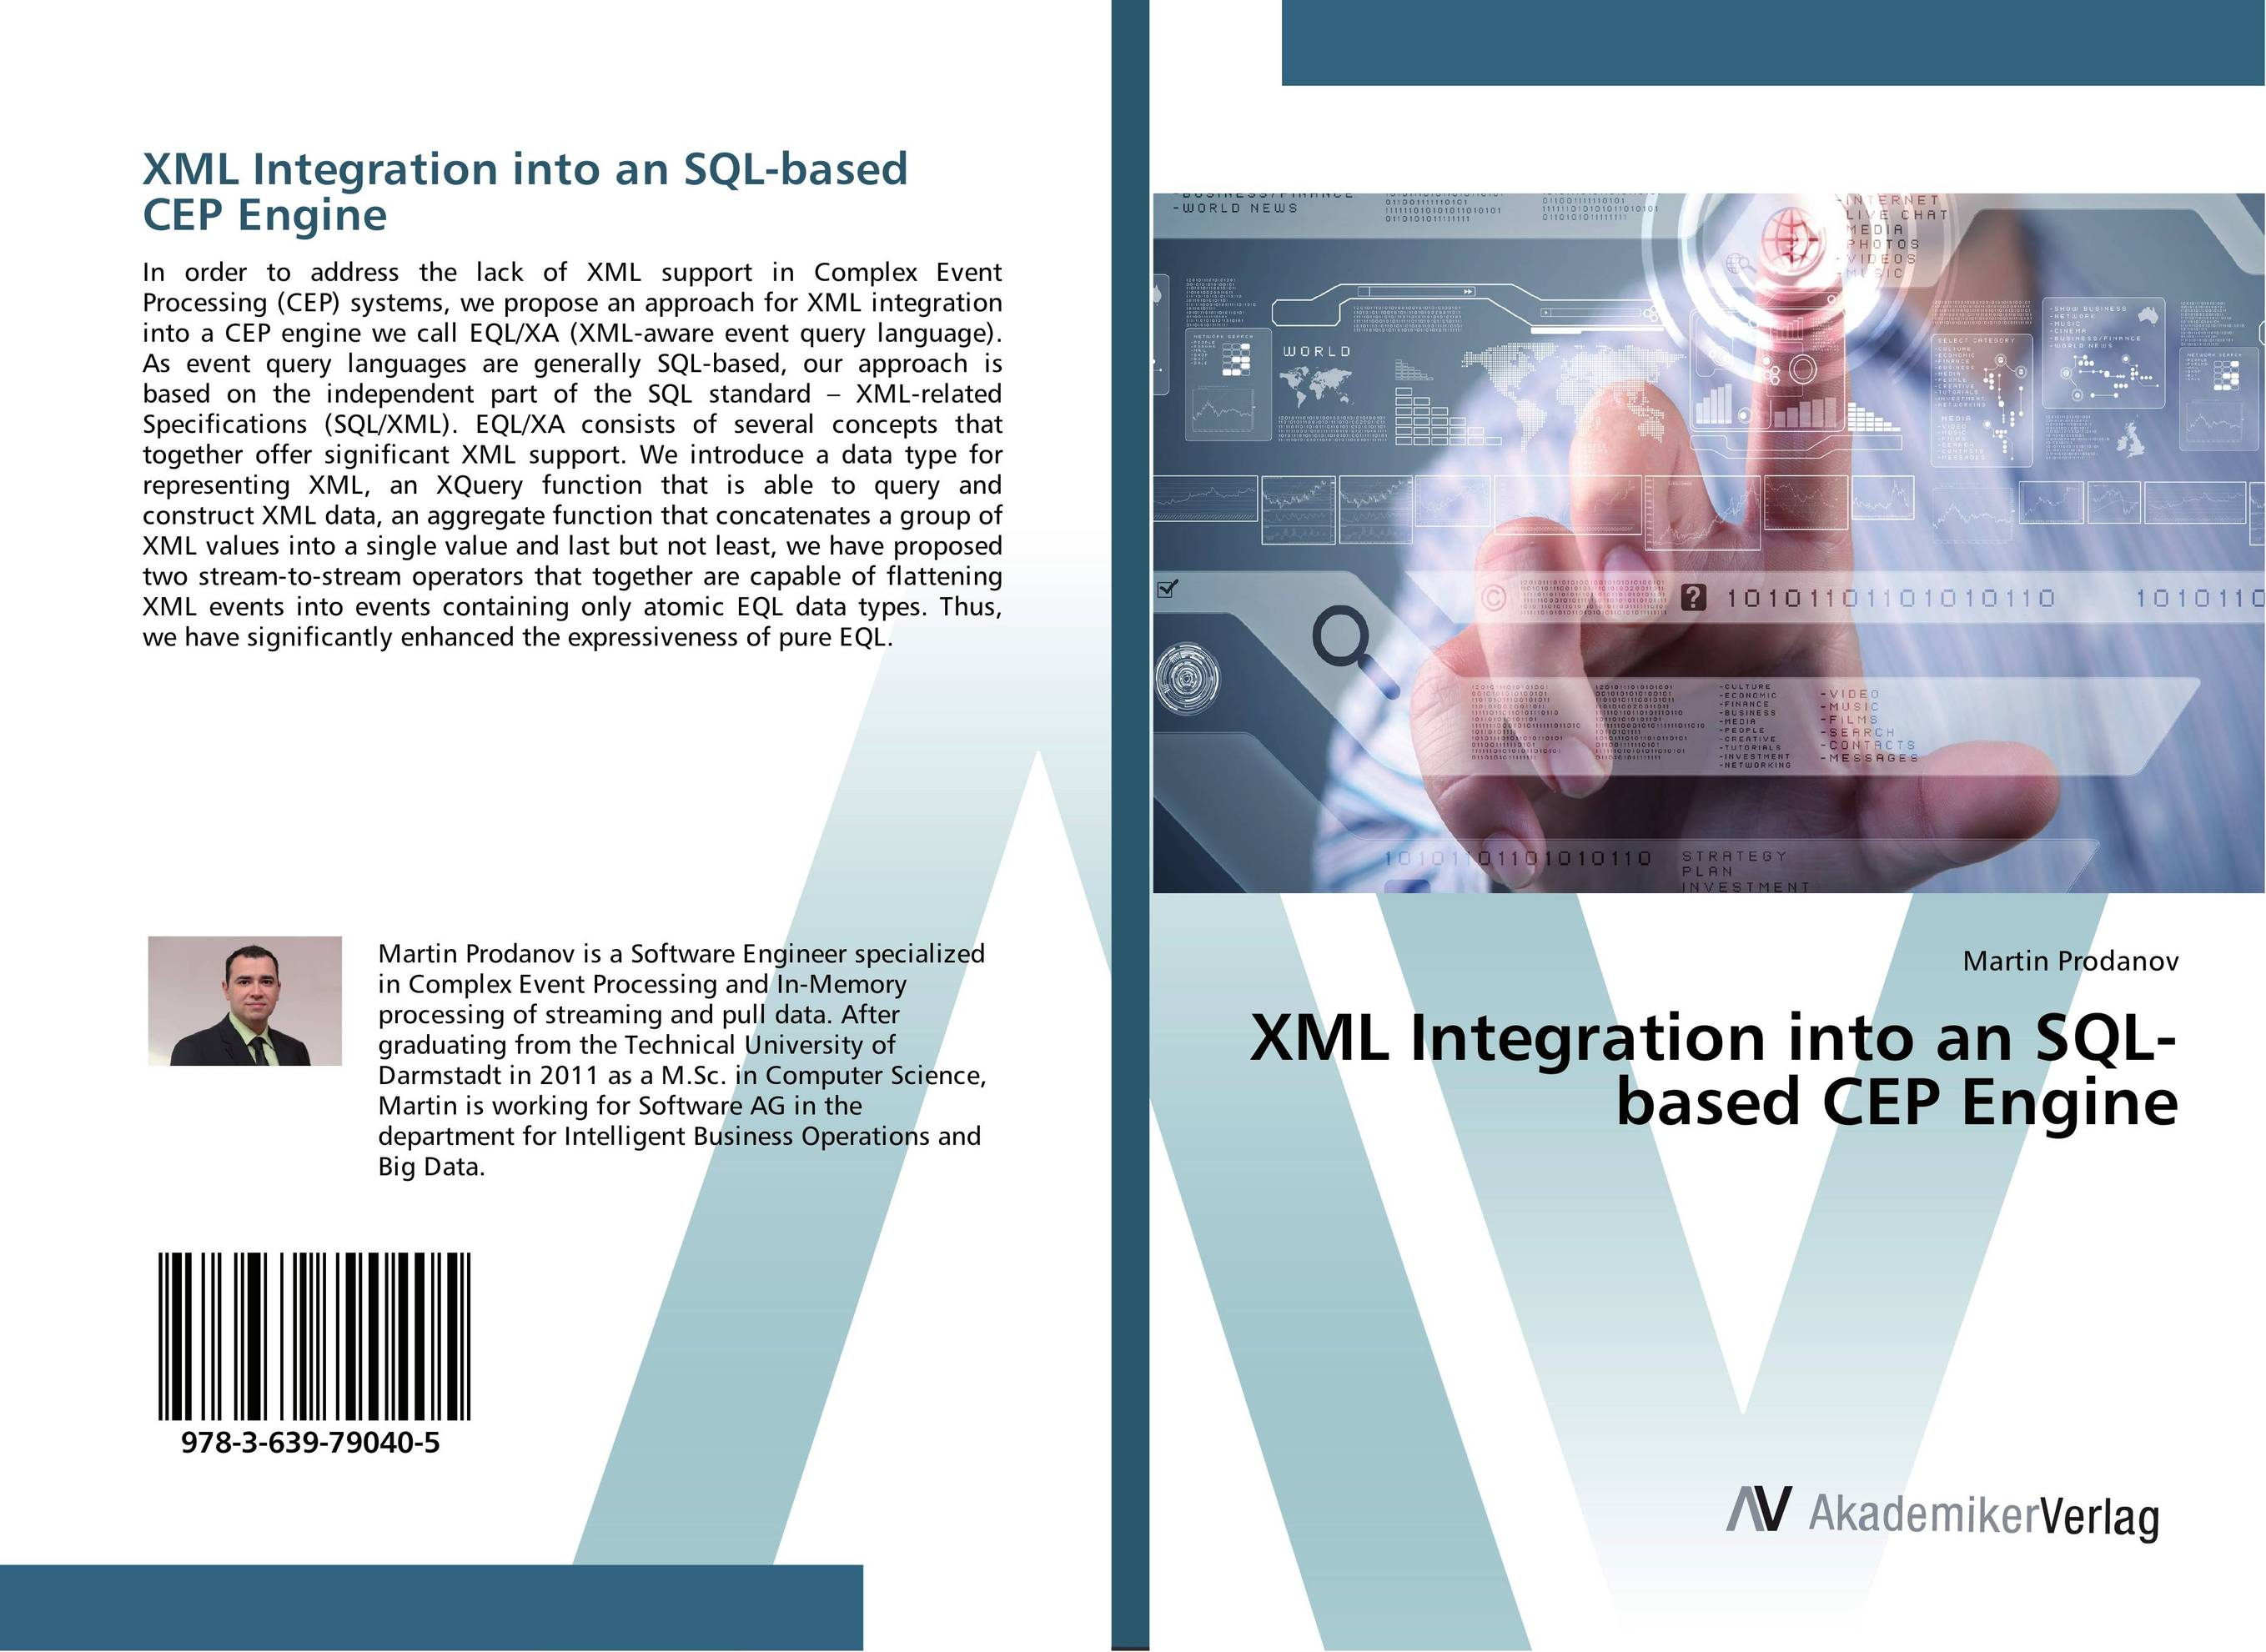 XML Integration into an SQL-based CEP Engine sitemap 395 xml